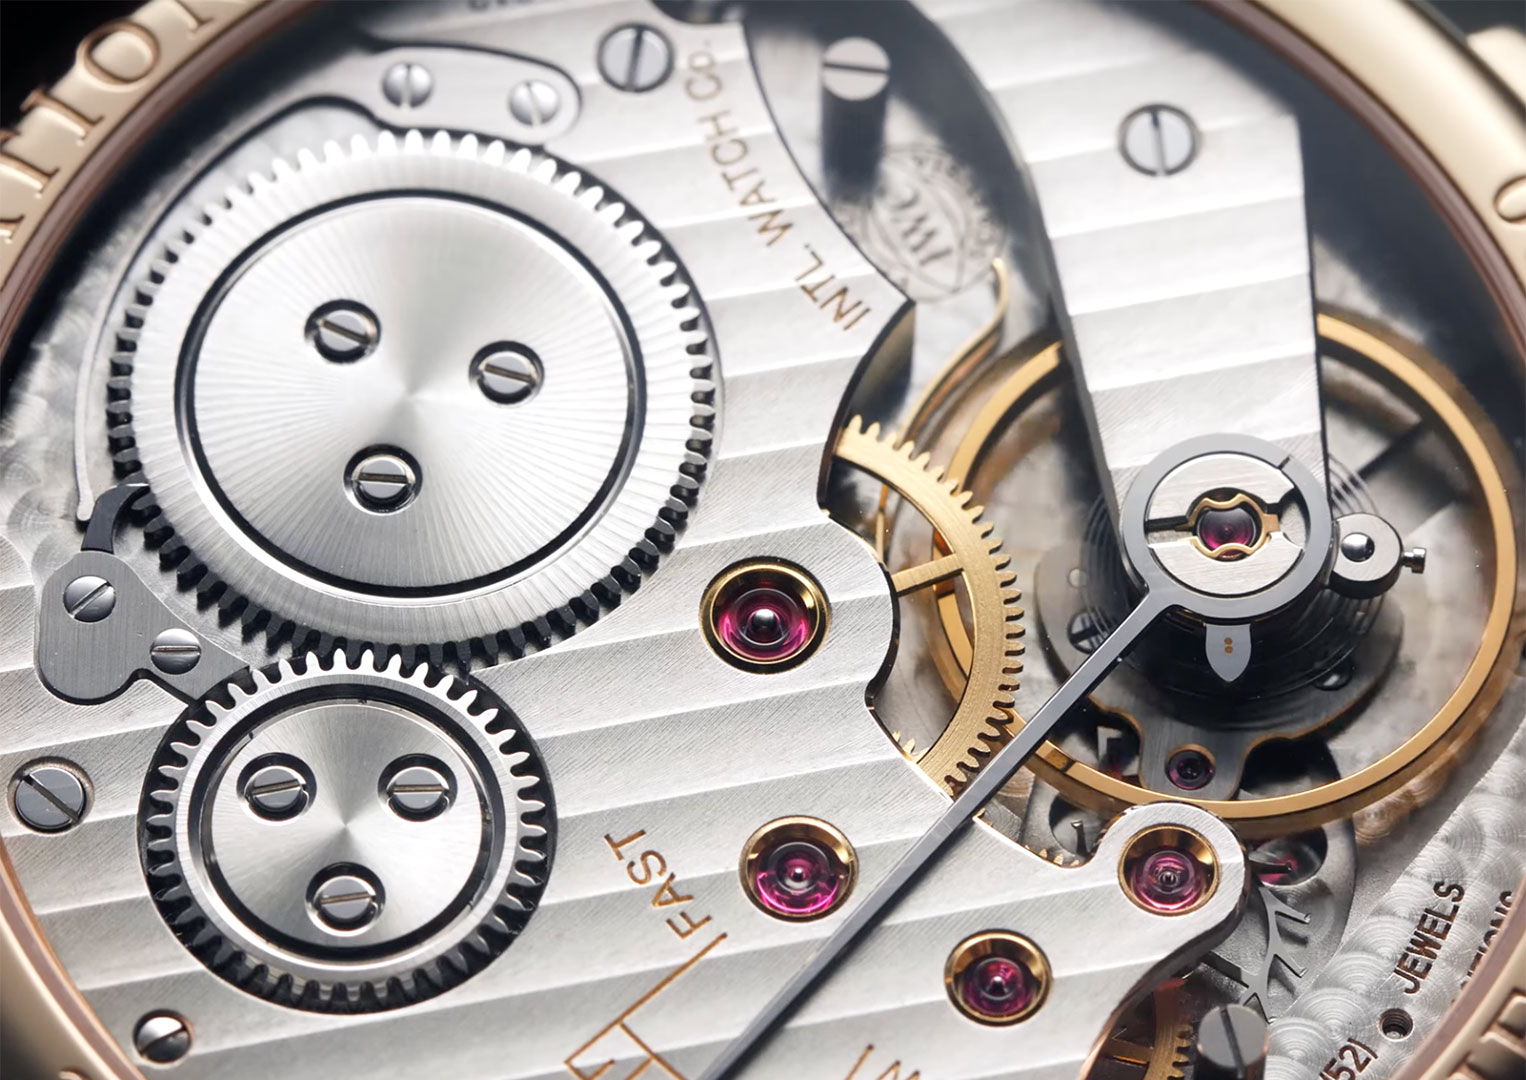 The minute repeater calibre 98950—found in the IWC Portugieser Minute Repeater IW544907—has 402 parts